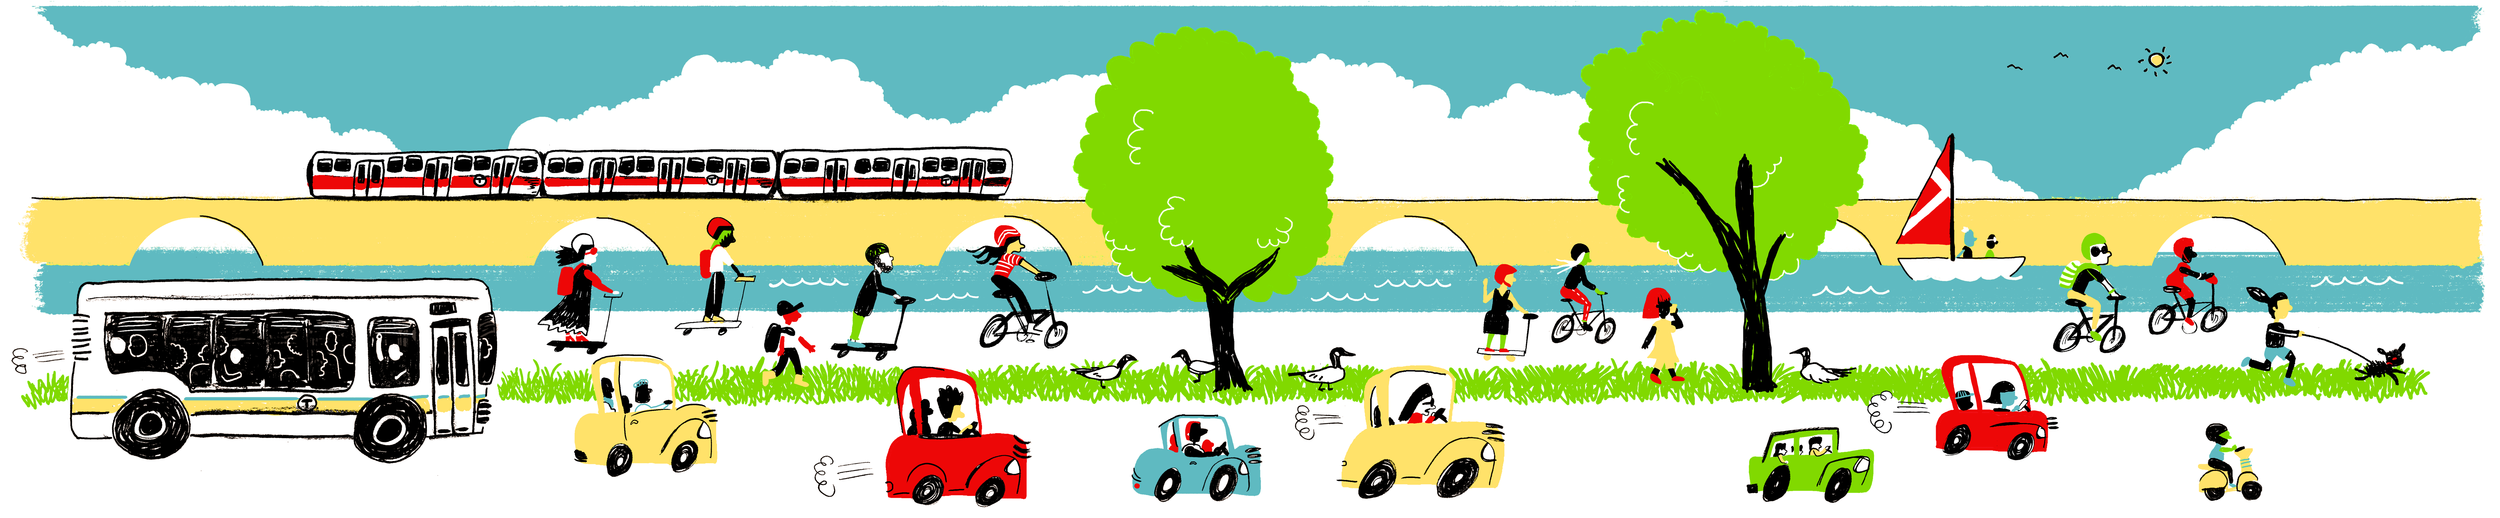 Commuting to MIT, 2018: bikes, scooters, cars, the Red Line, and more are all traveling to MIT! Illustration by Jose-Luis Olivares.